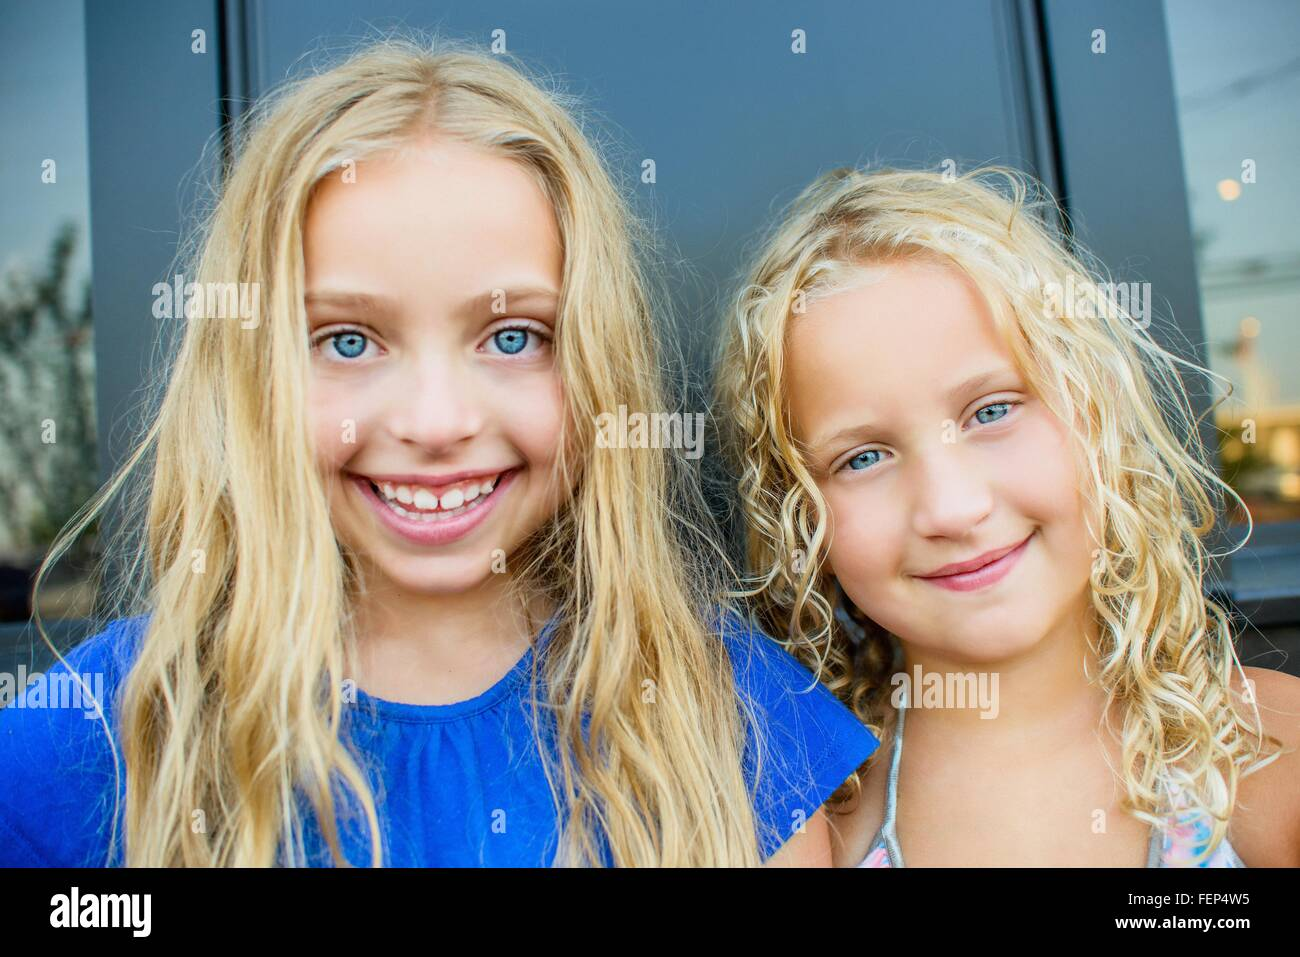 Portrait of blond haired and blue eyed sisters at sidewalk cafe - Stock Image